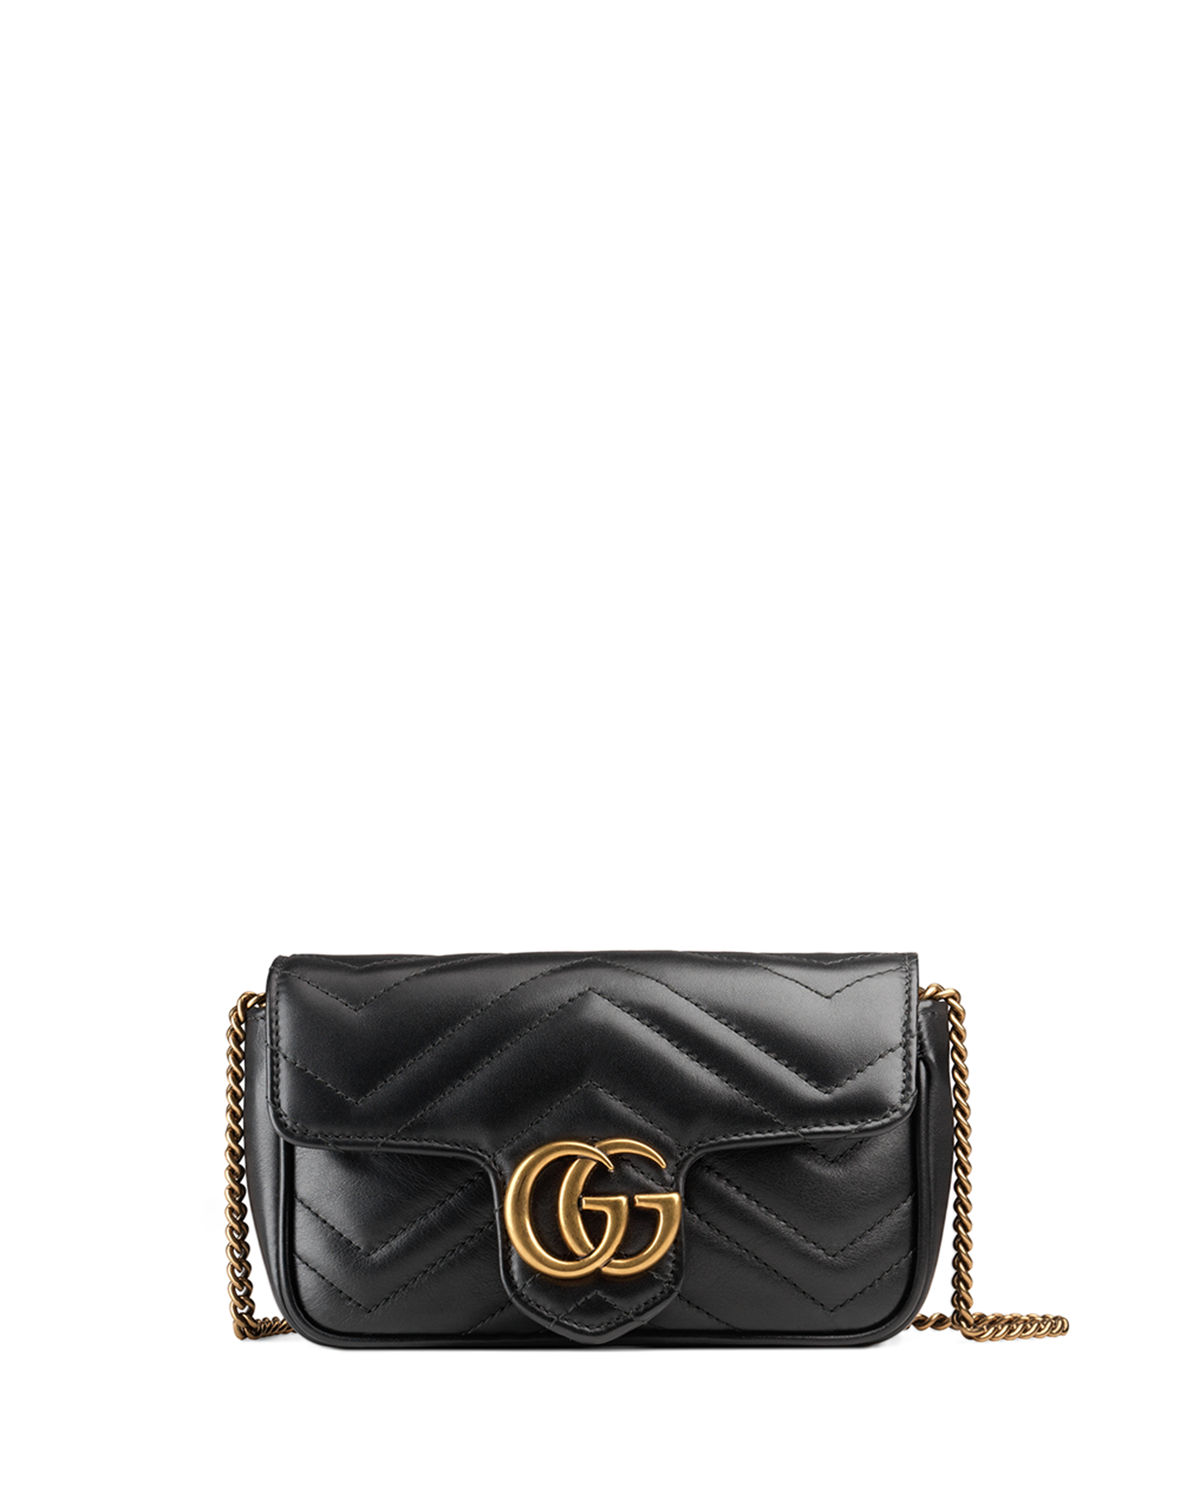 0a1eef226121 Gucci GG Marmont Matelasse Leather Super Mini Bag